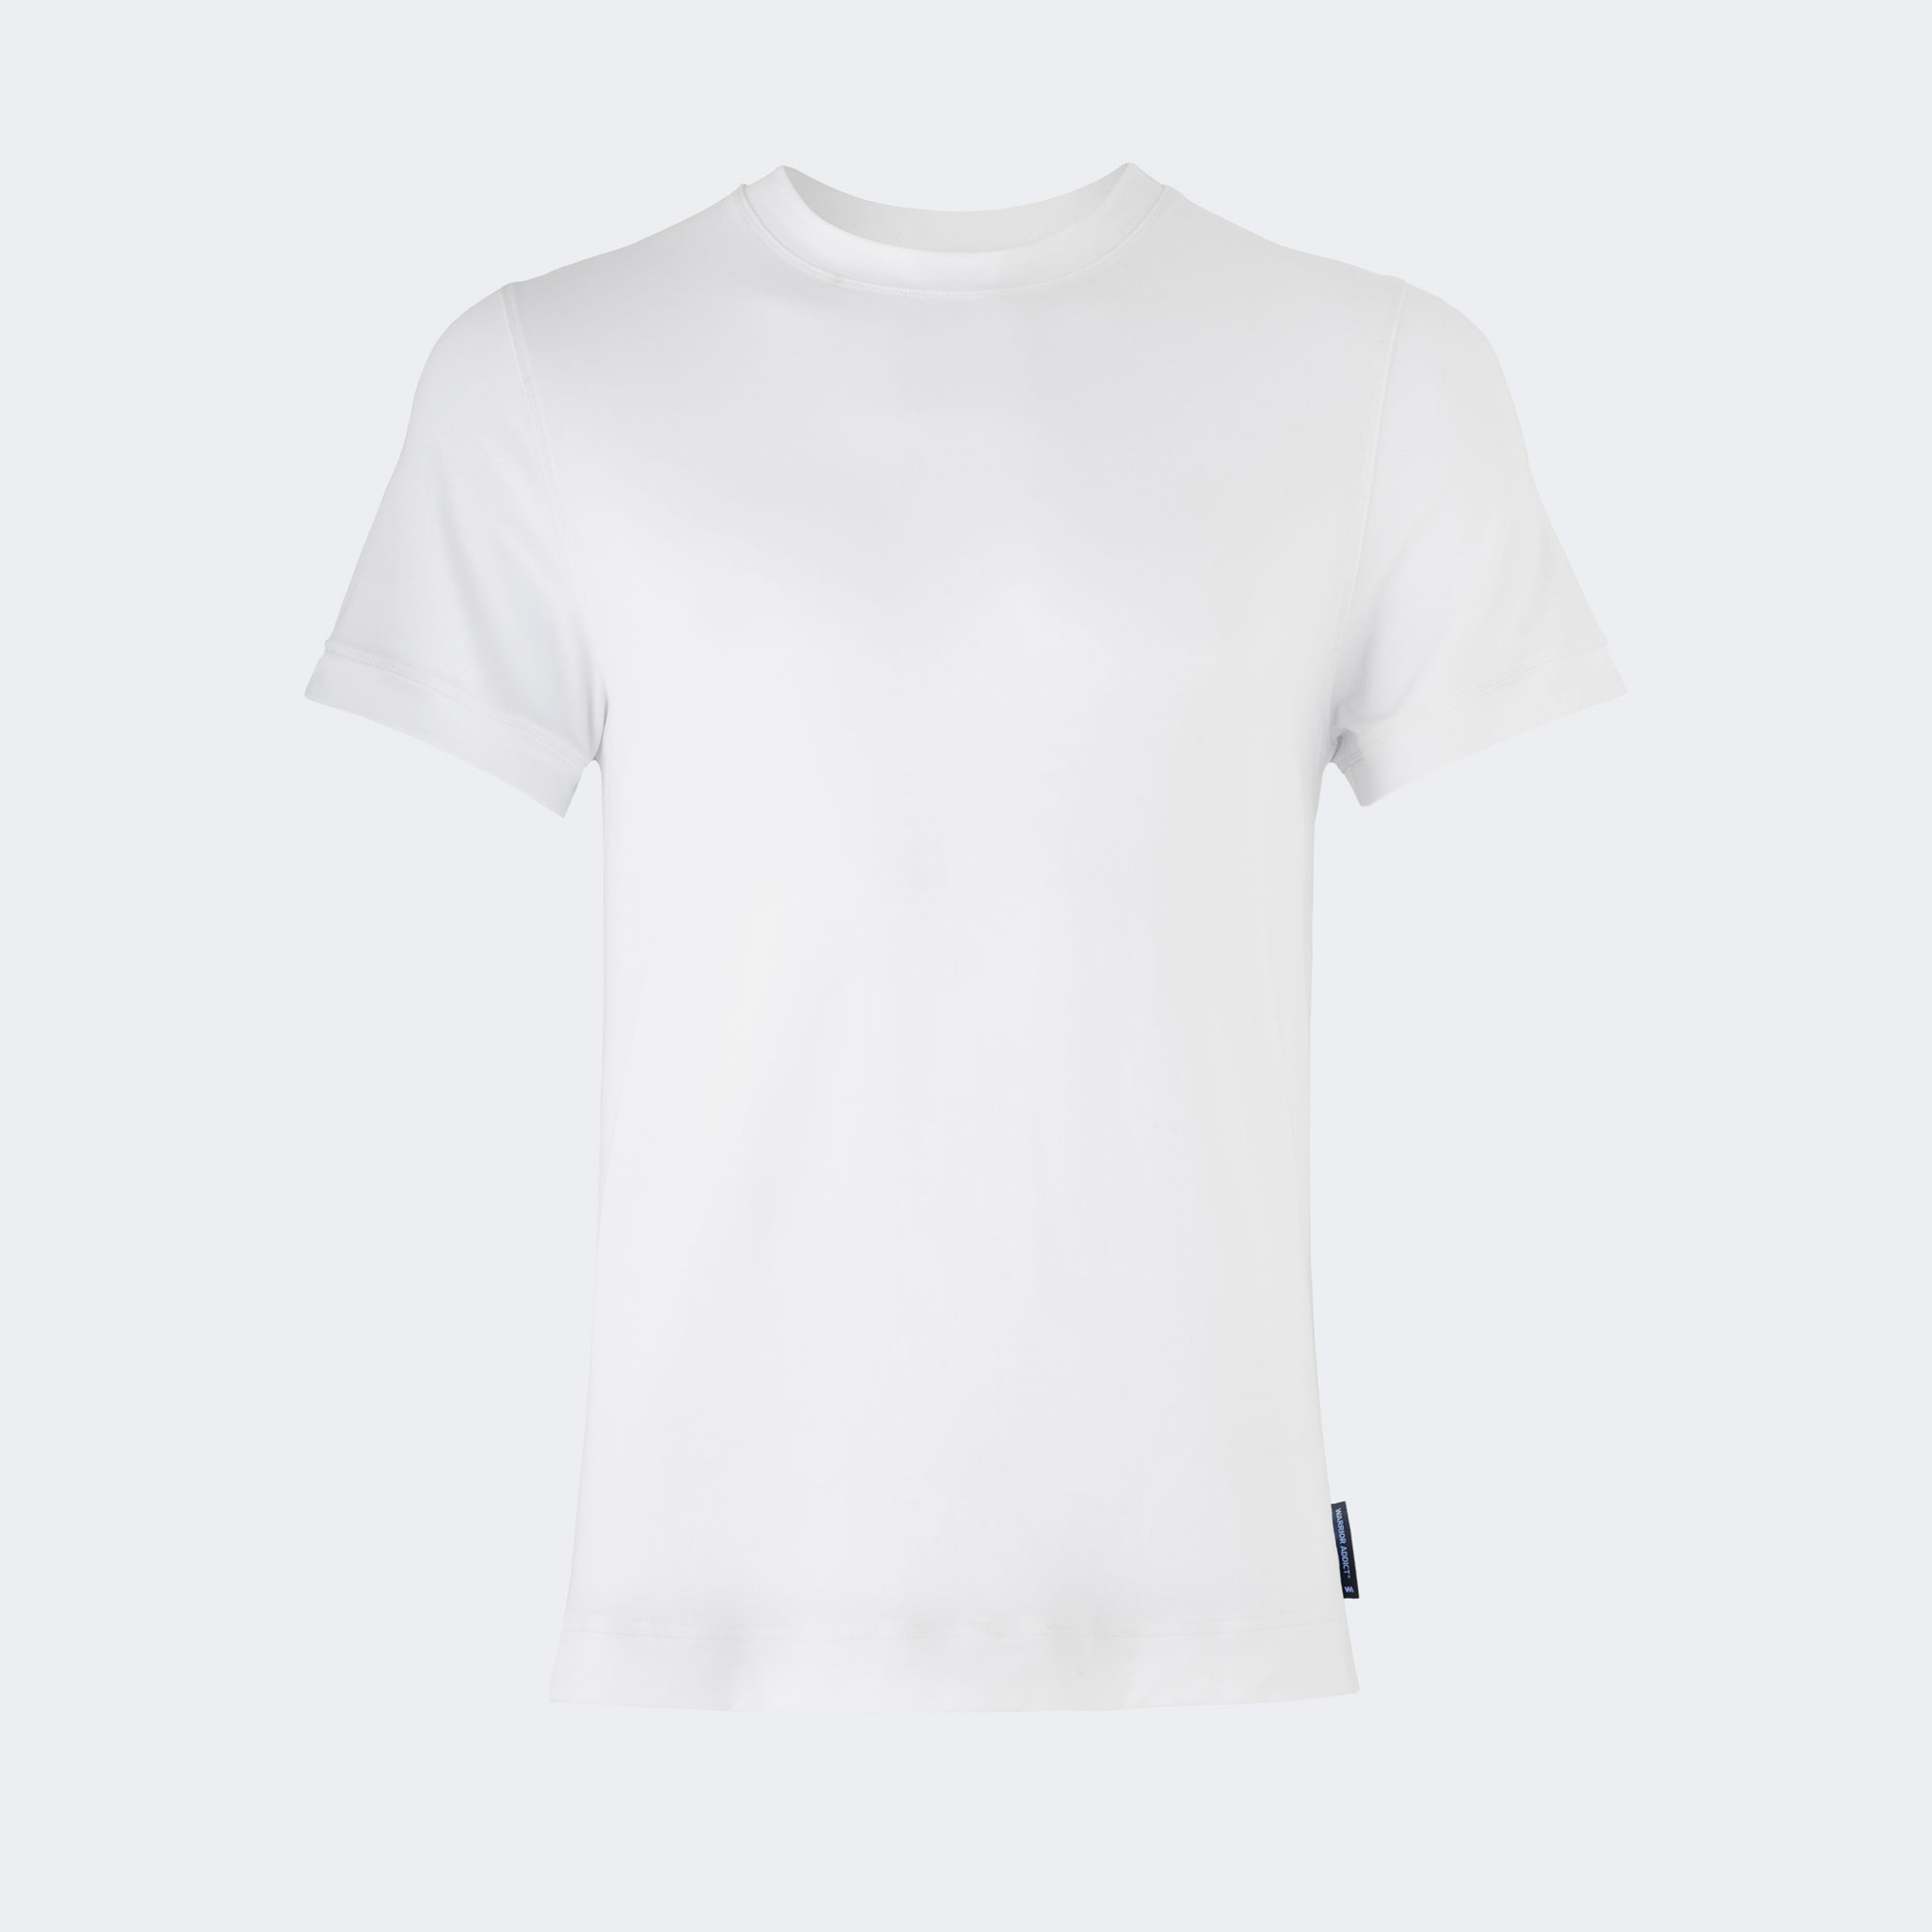 Warrior addict white mens yoga performance t-shirt front view